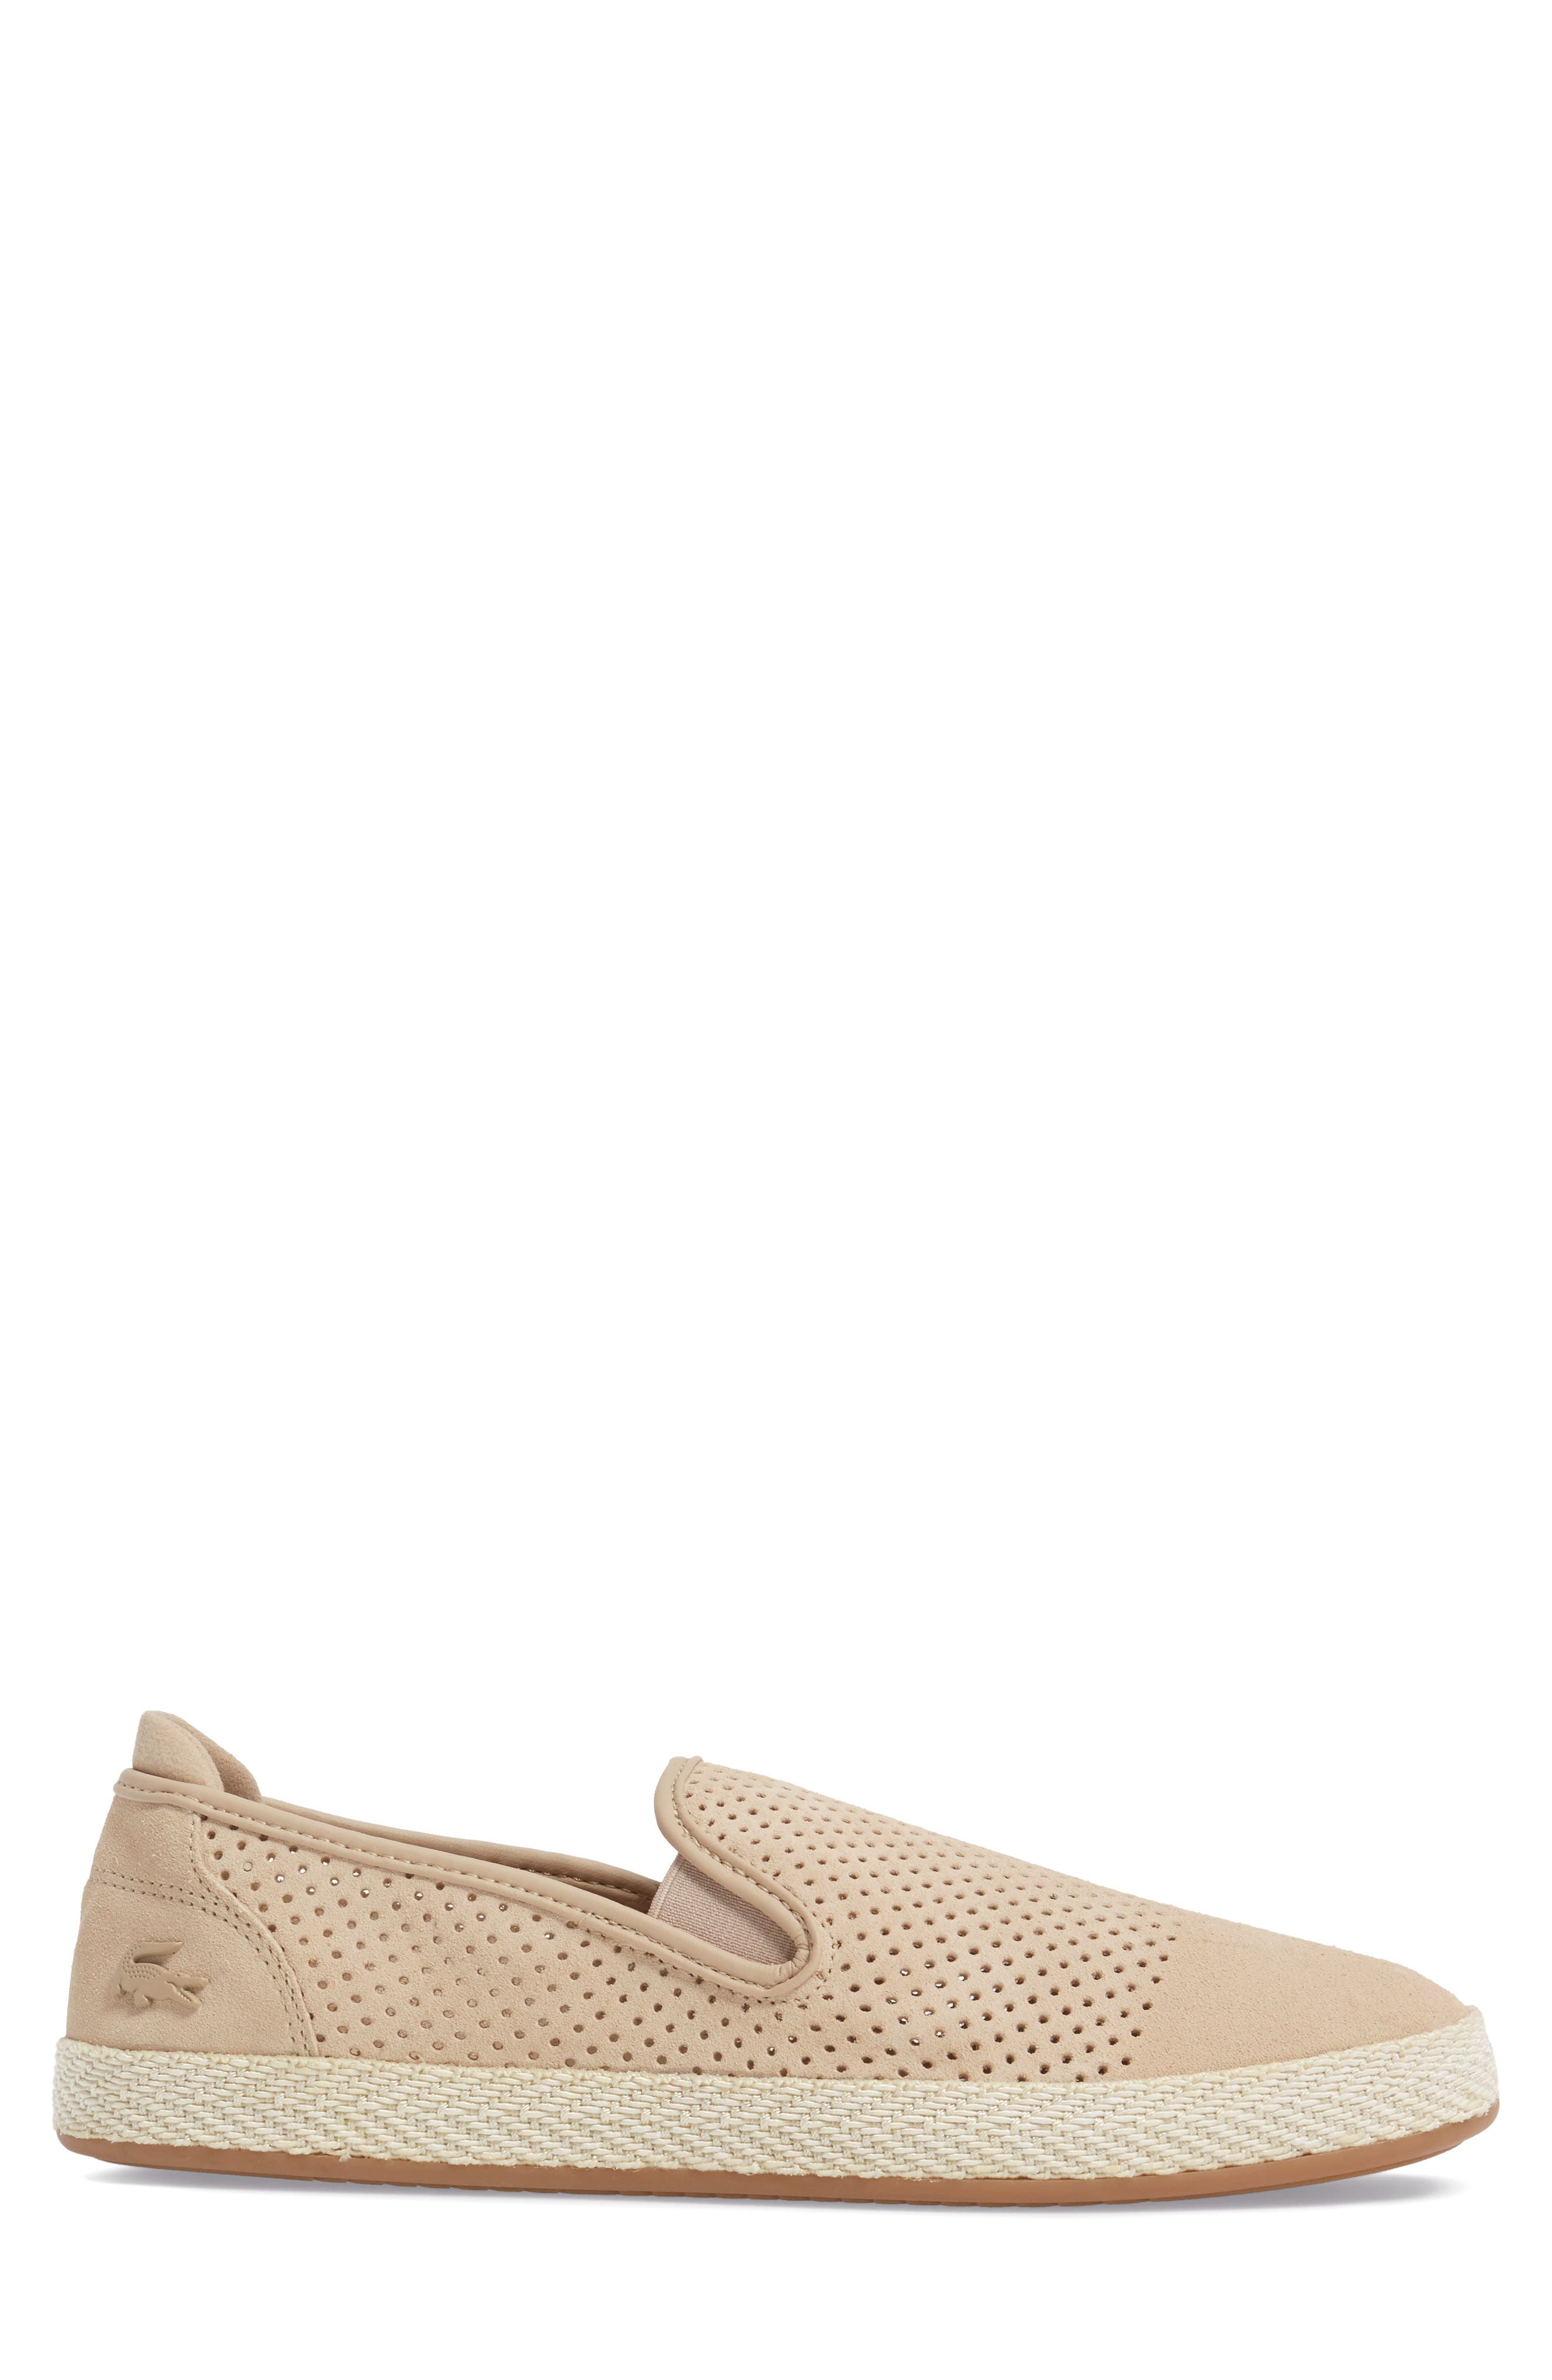 Tombre Slip-On,                             Alternate thumbnail 3, color,                             Natural Suede